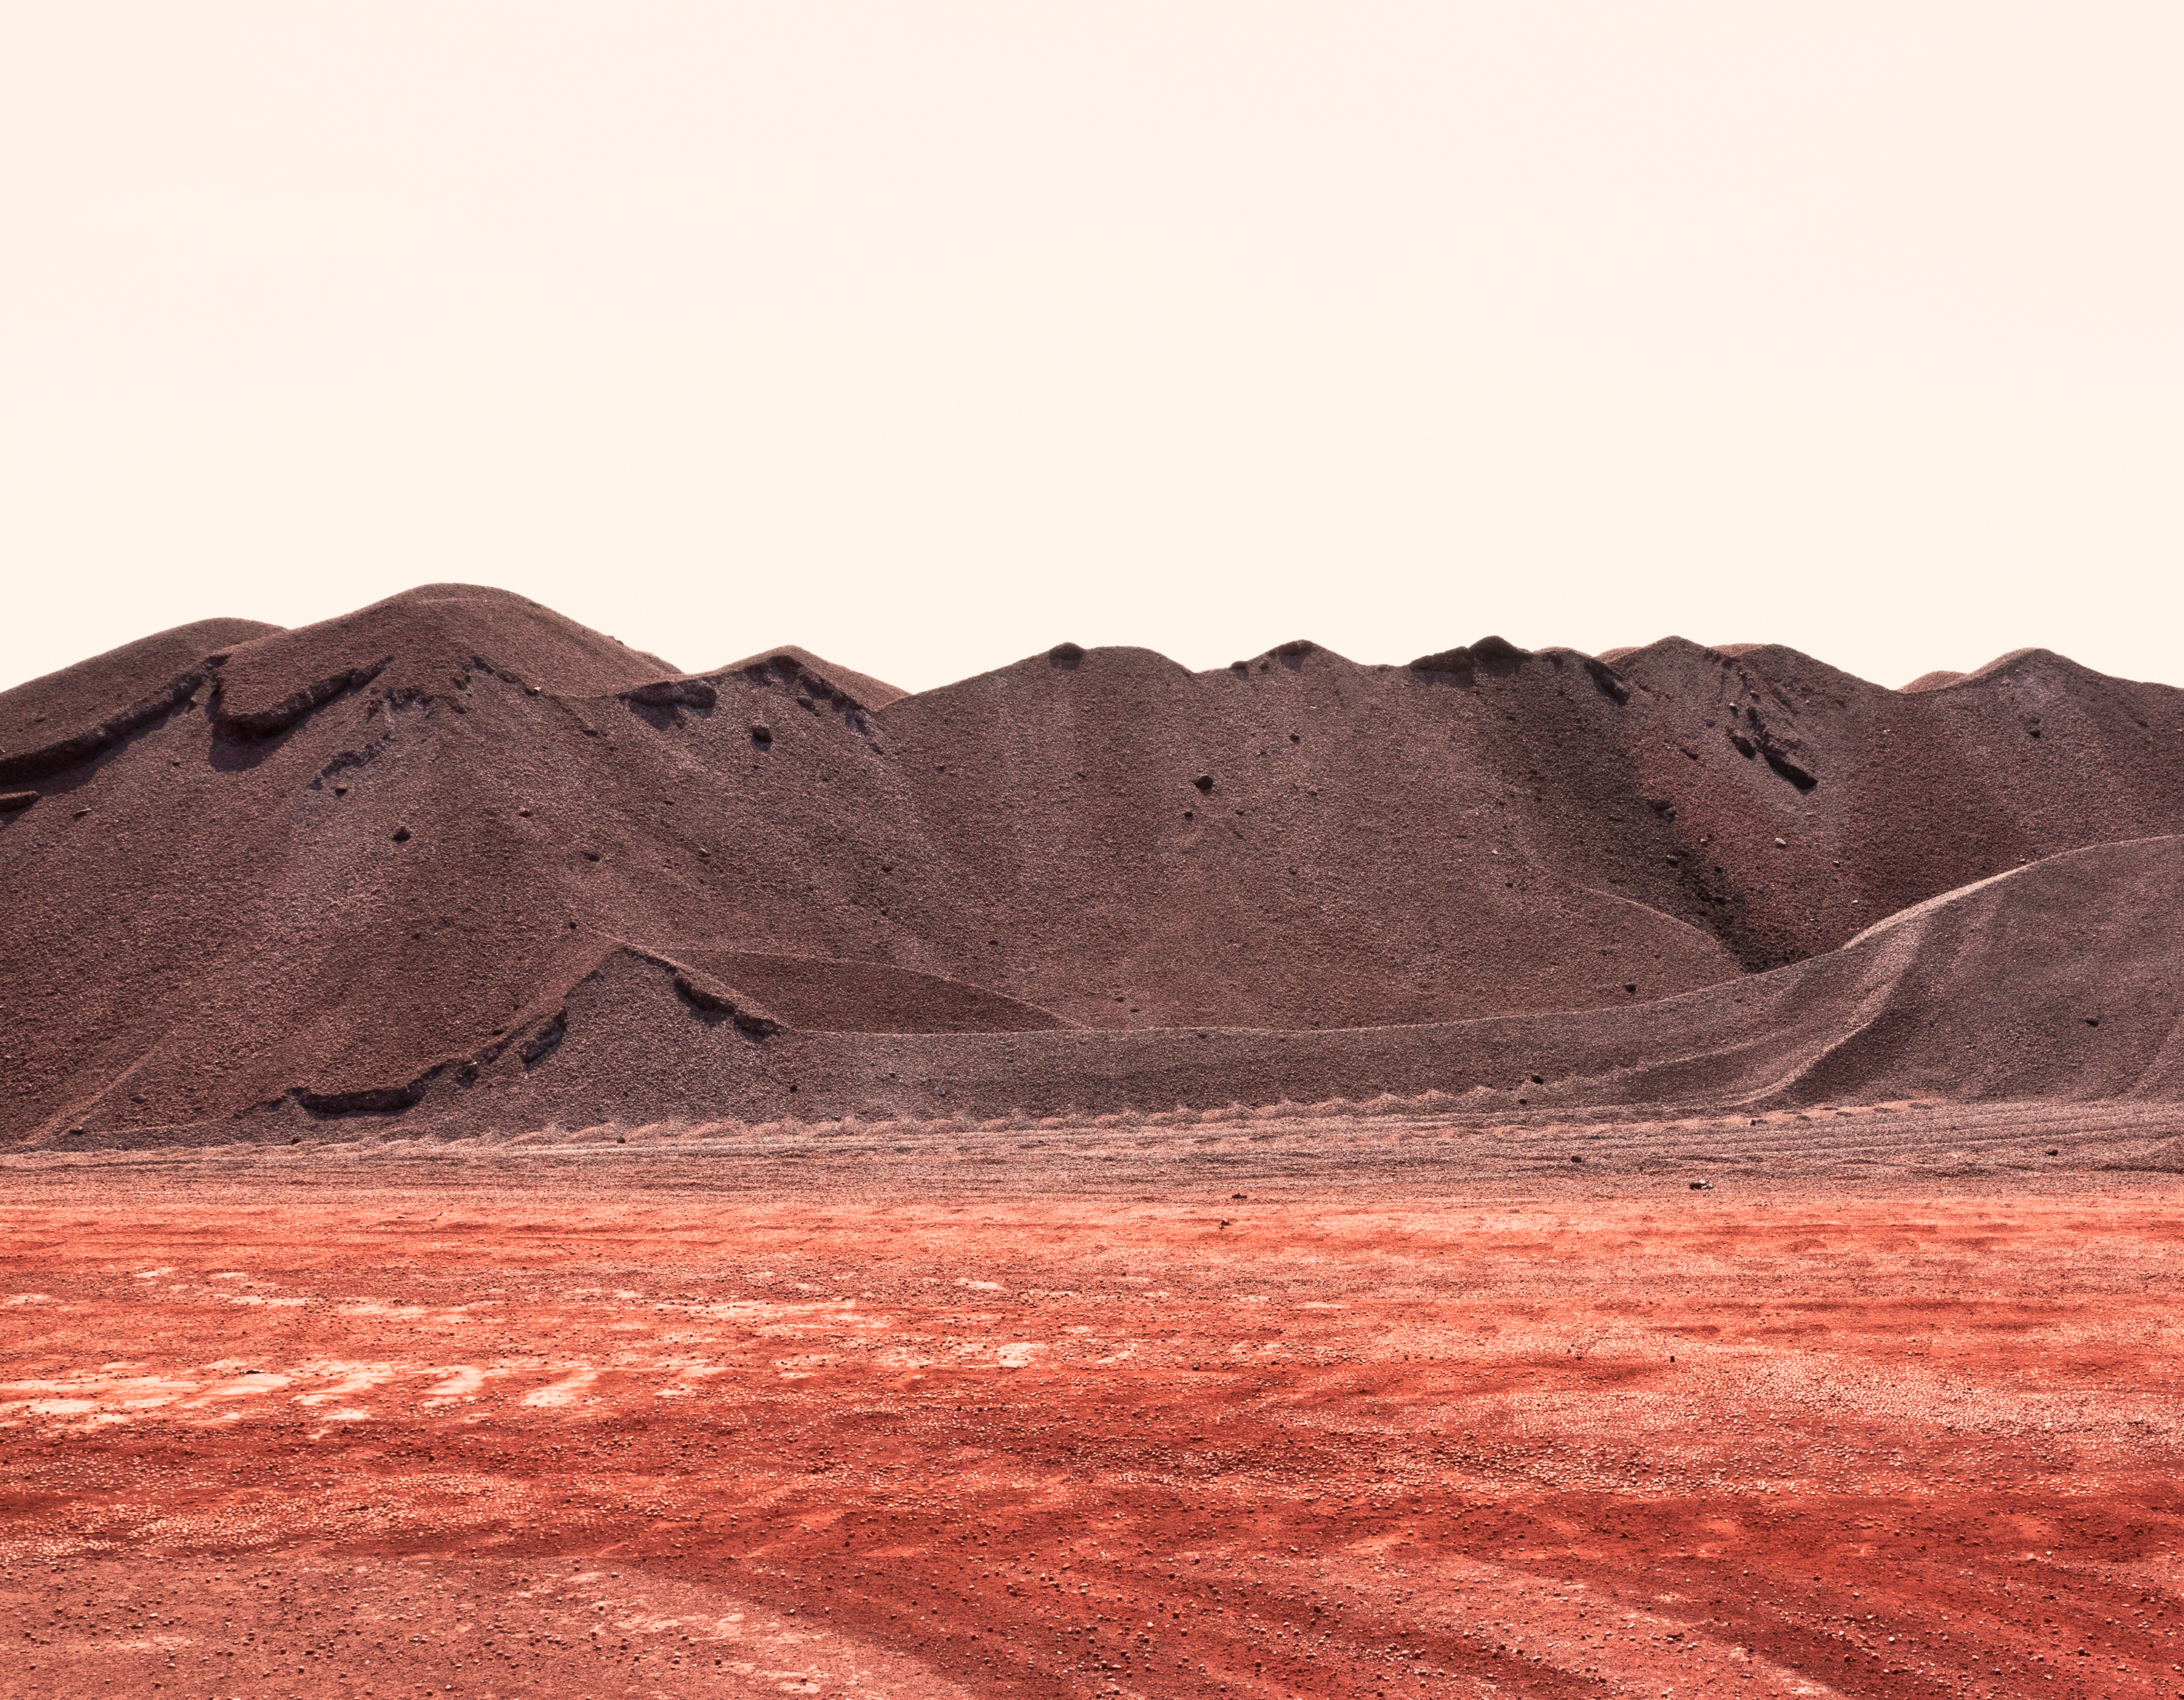 Image: Chris Round, Whyalla South Australia, 2011